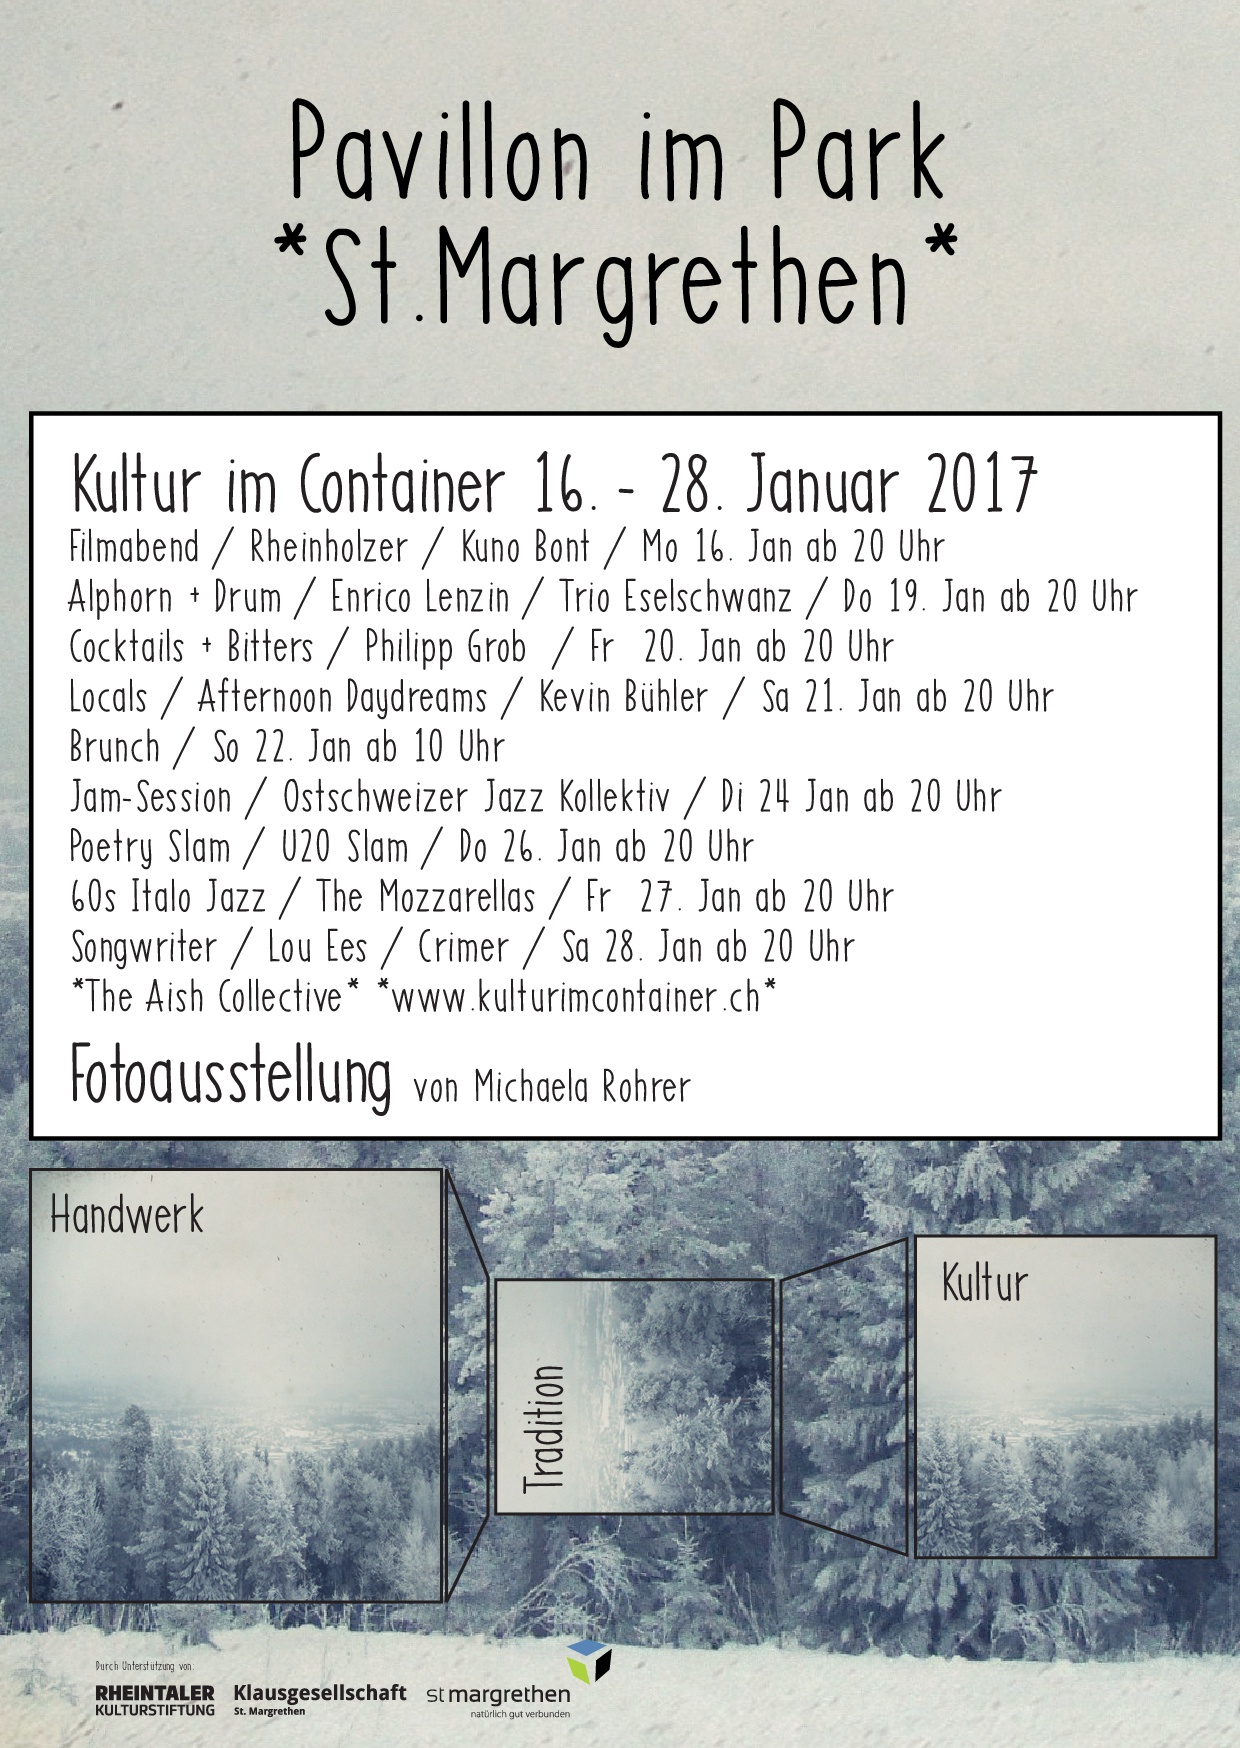 KulturimContainer 2017